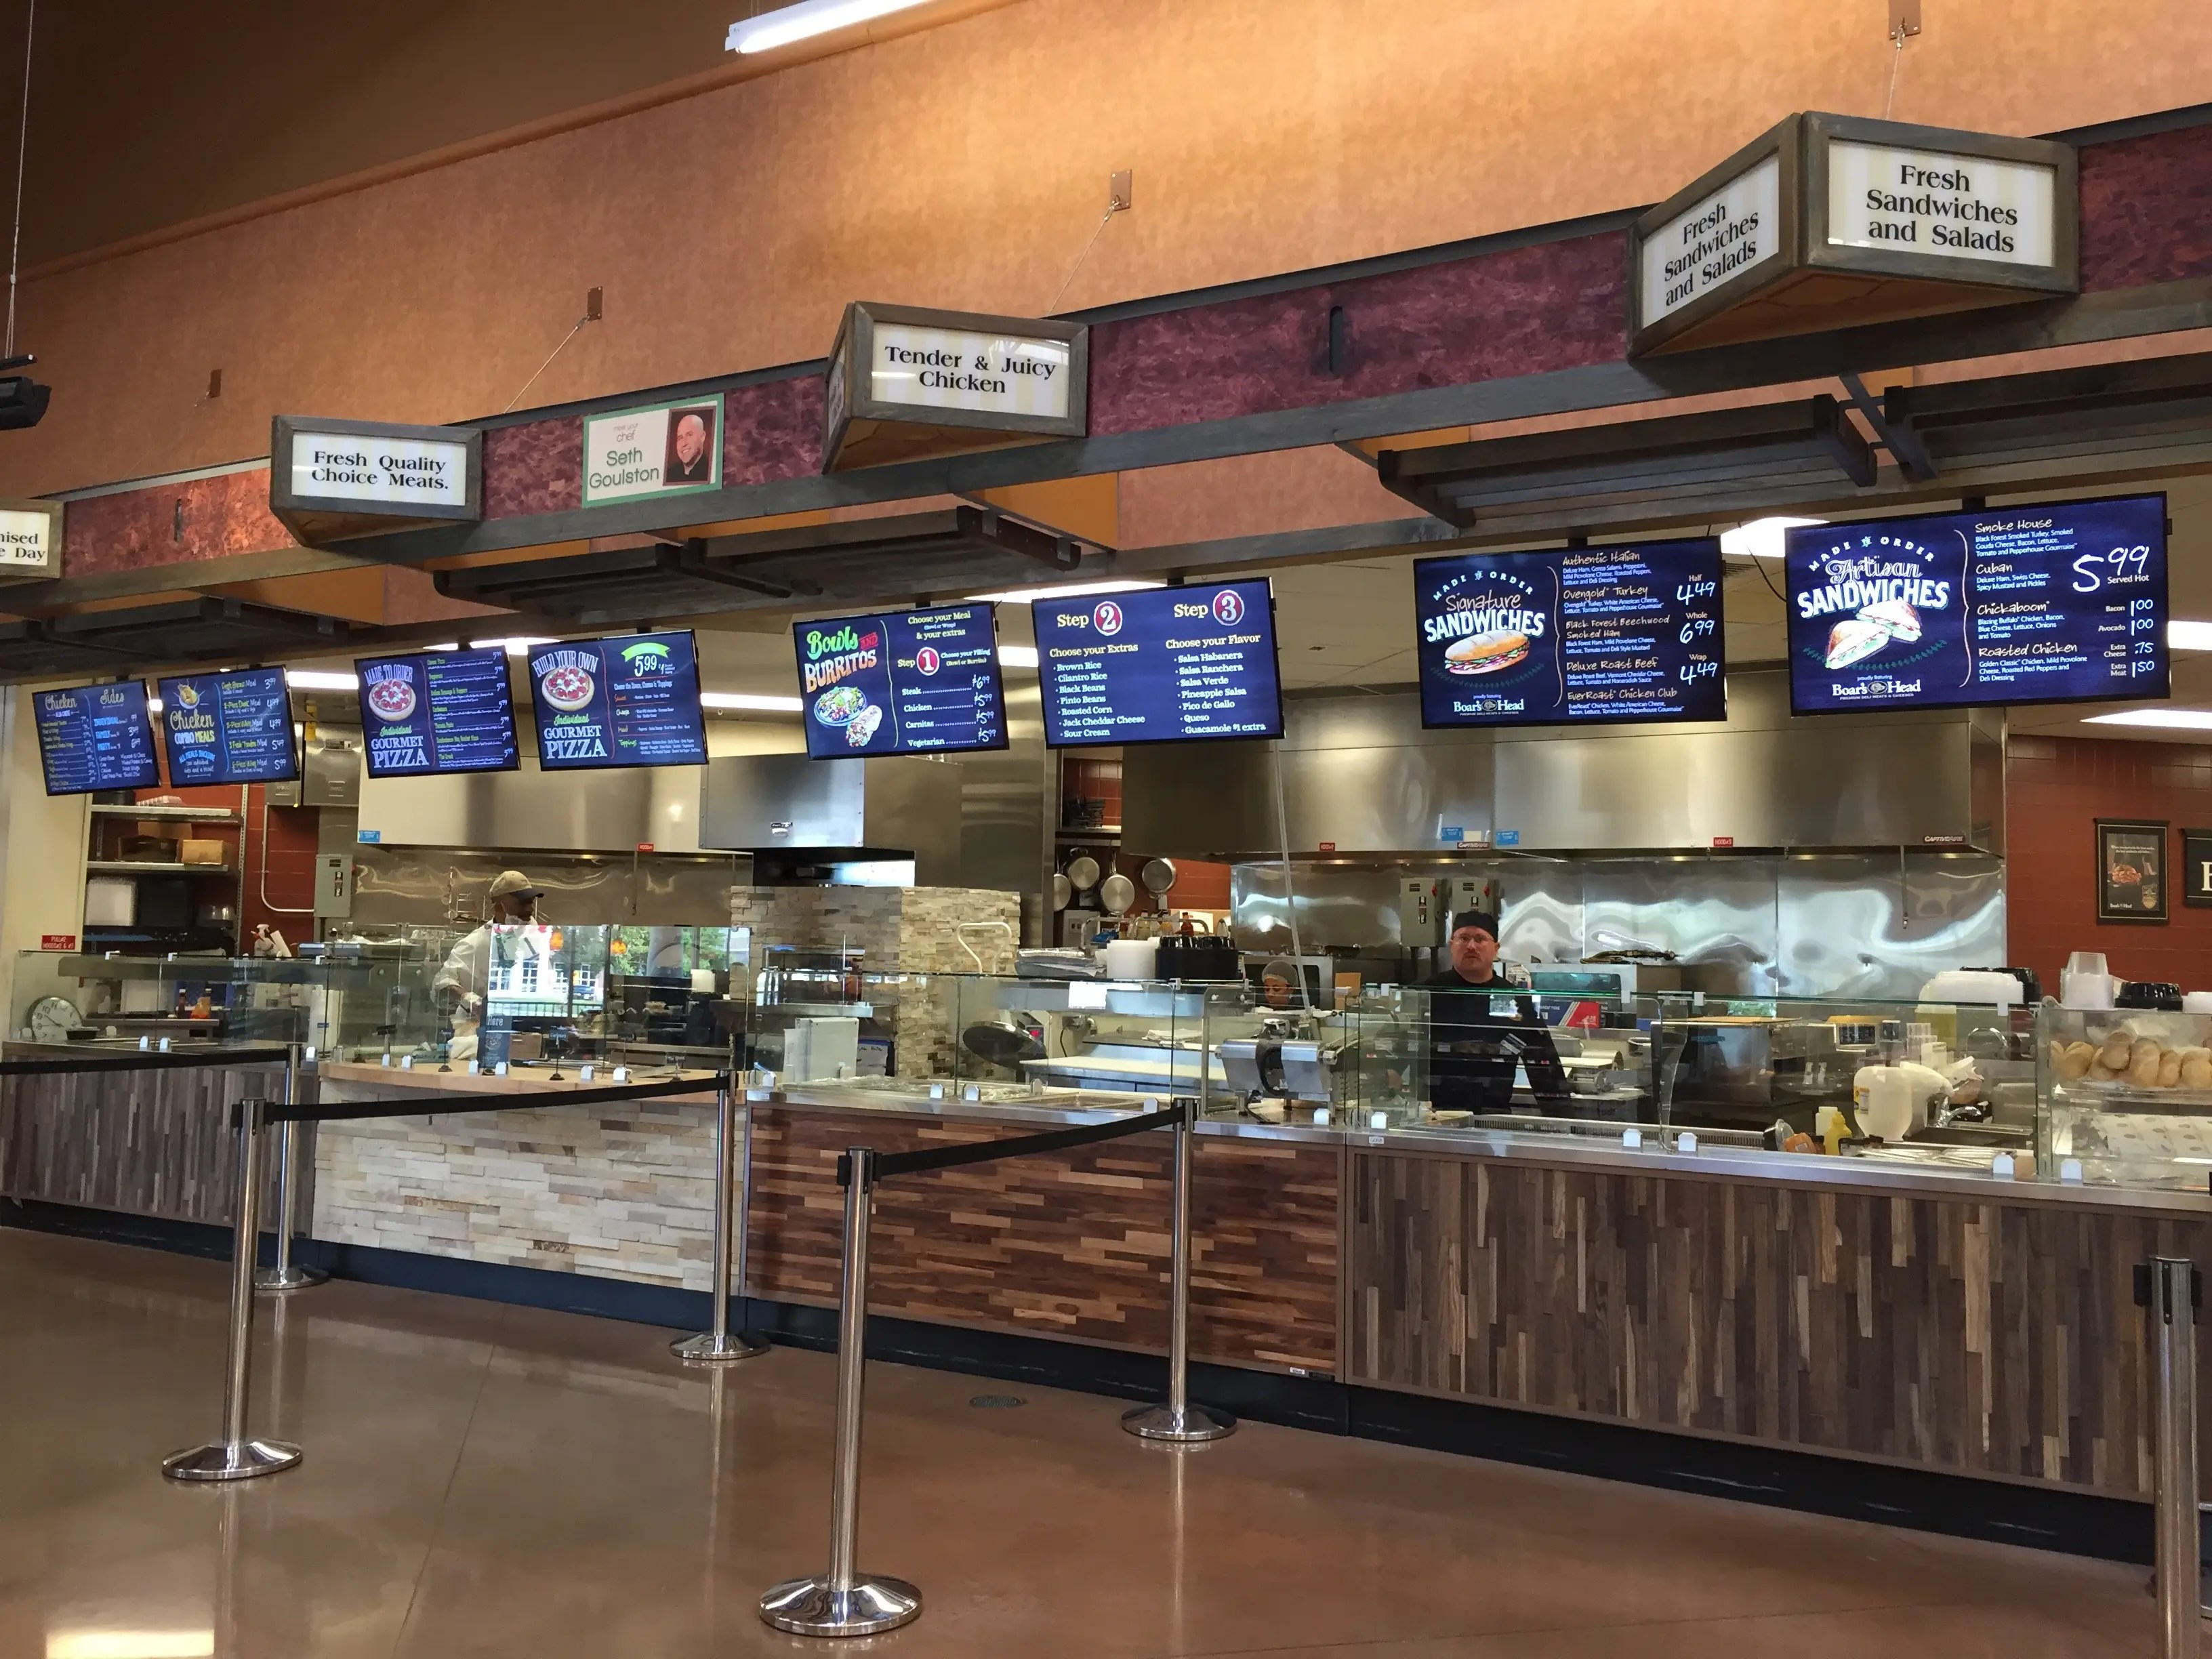 """The """"fresh meals"""" kitchen features all kinds of customizable dishes, including pizza, sandwiches, and burrito bowls made to order."""